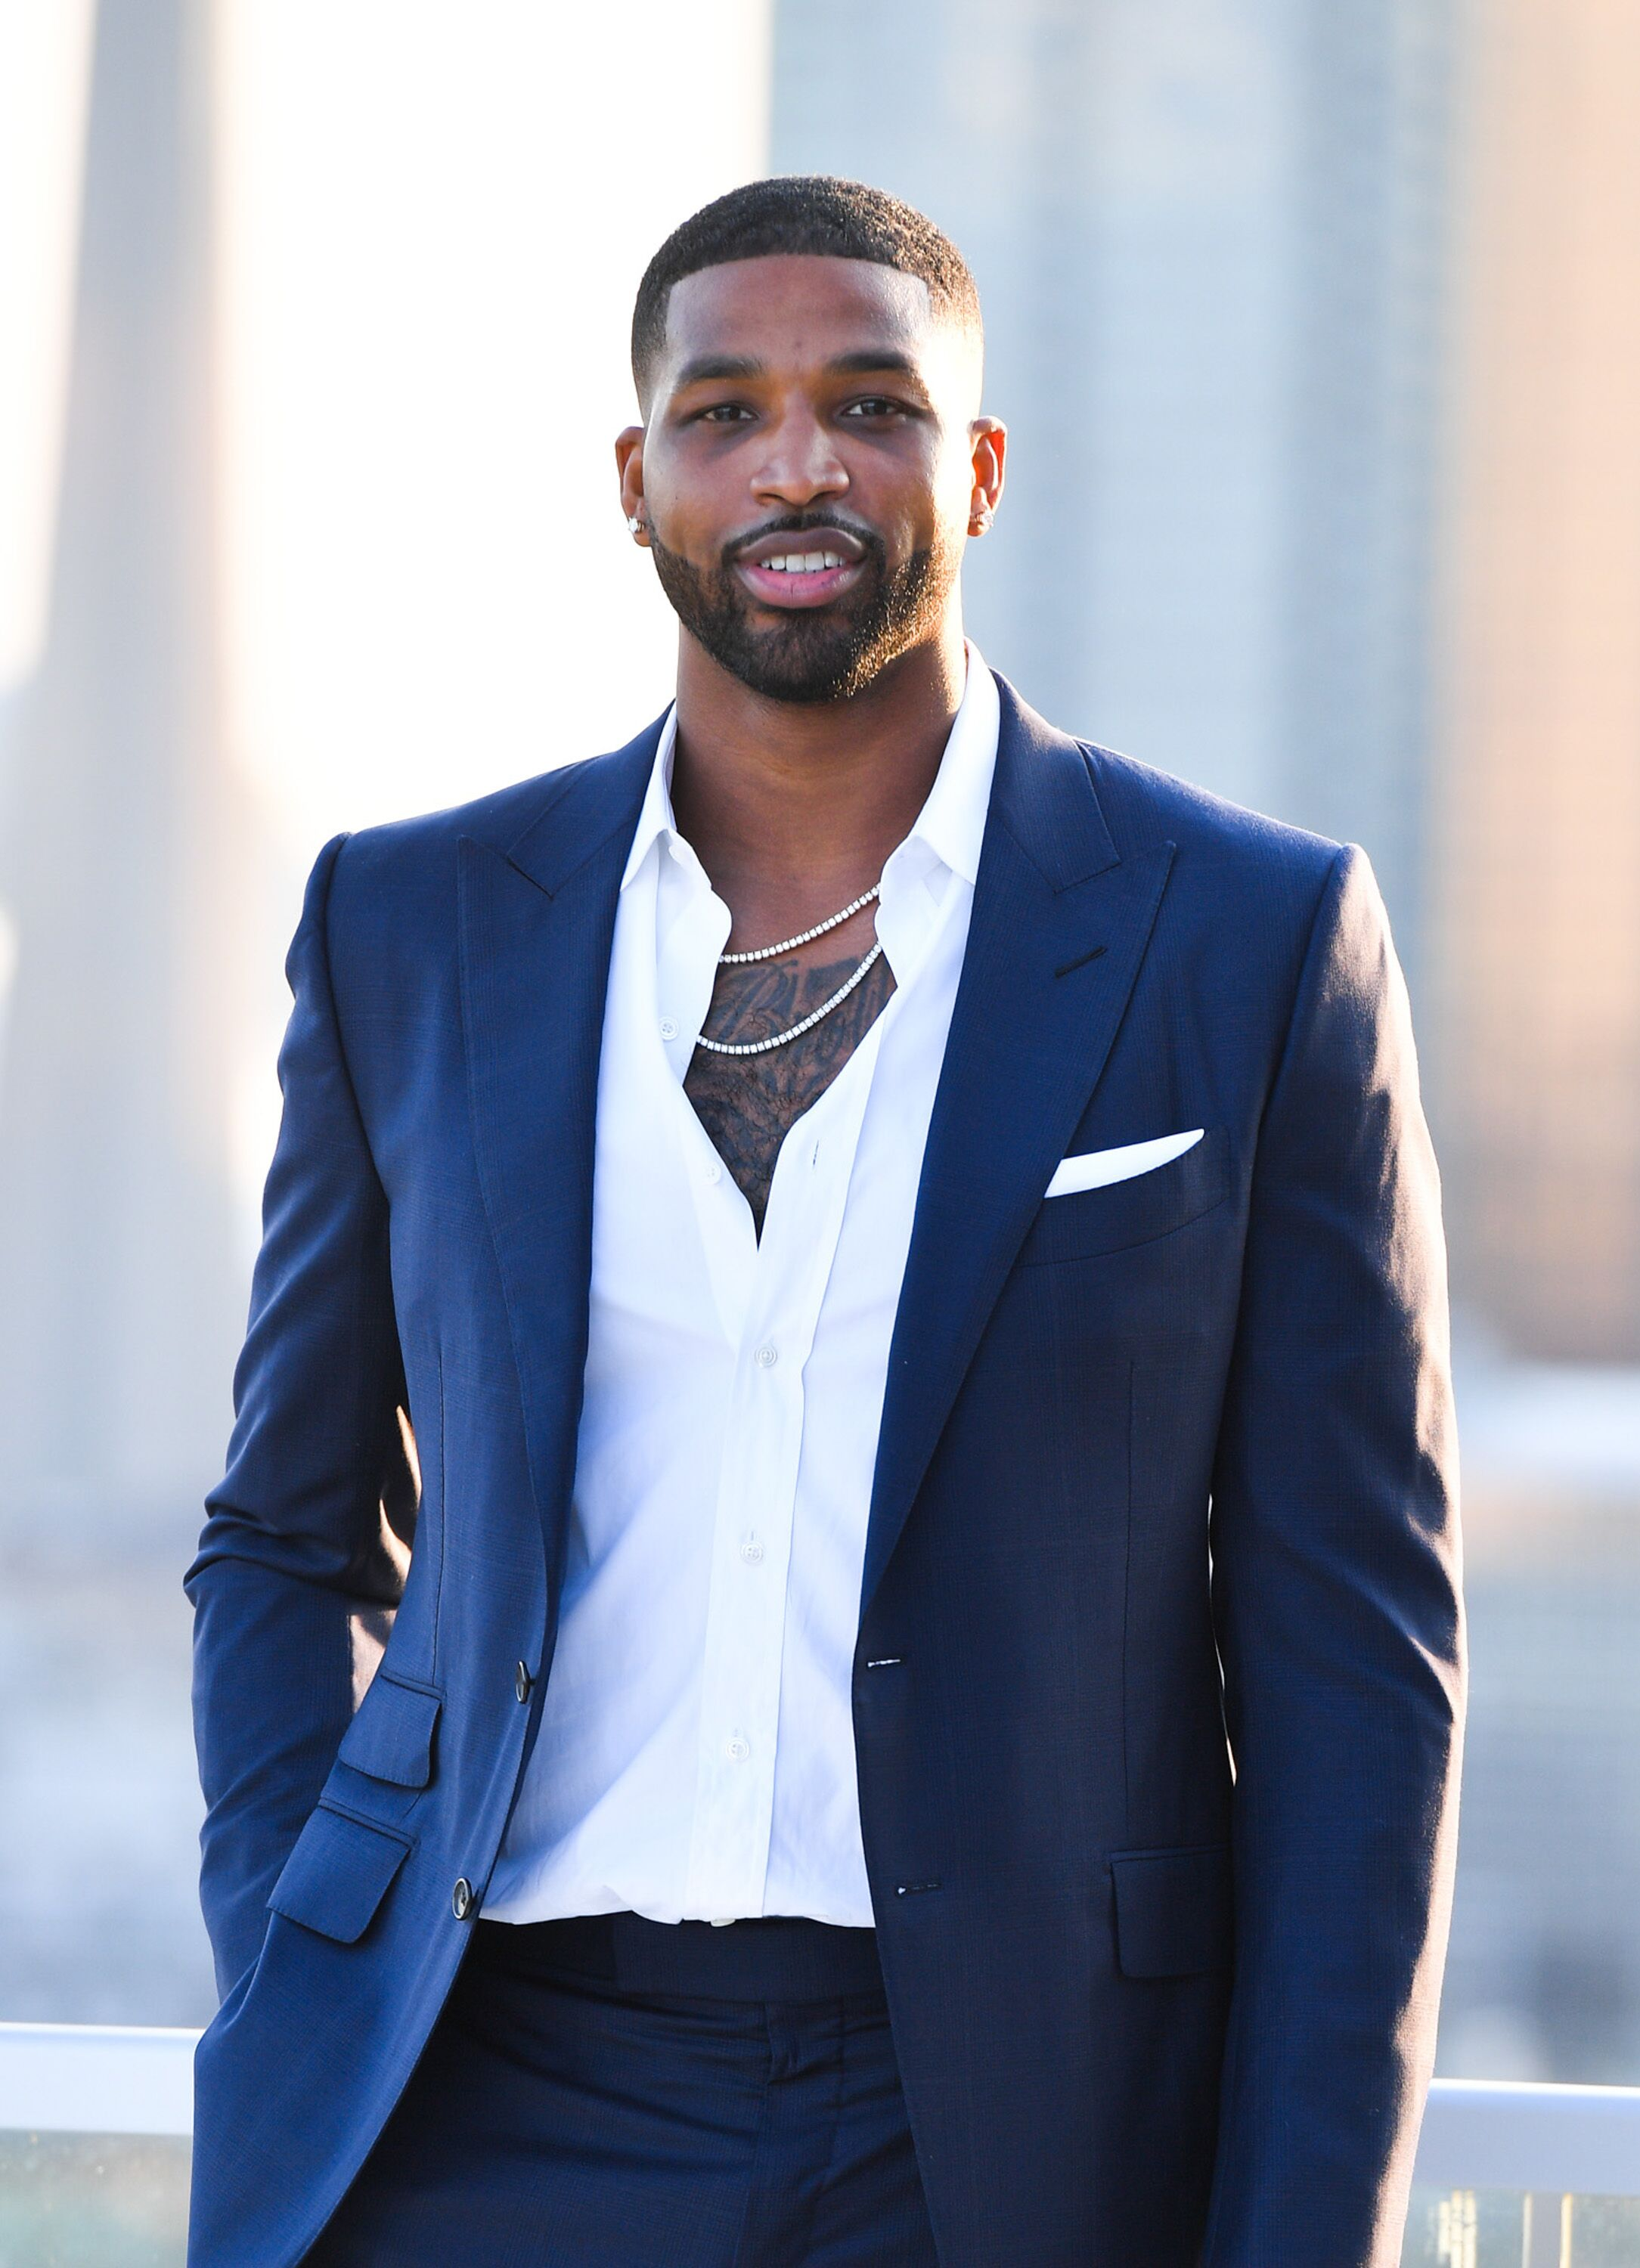 NBA Champion Tristan Thompson attends The Amari Thompson Soiree 2019 in support of Epilepsy Toronto held at The Globe and Mail Centre on August 01, 2019 in Toronto, Canada. | Source: Getty Images